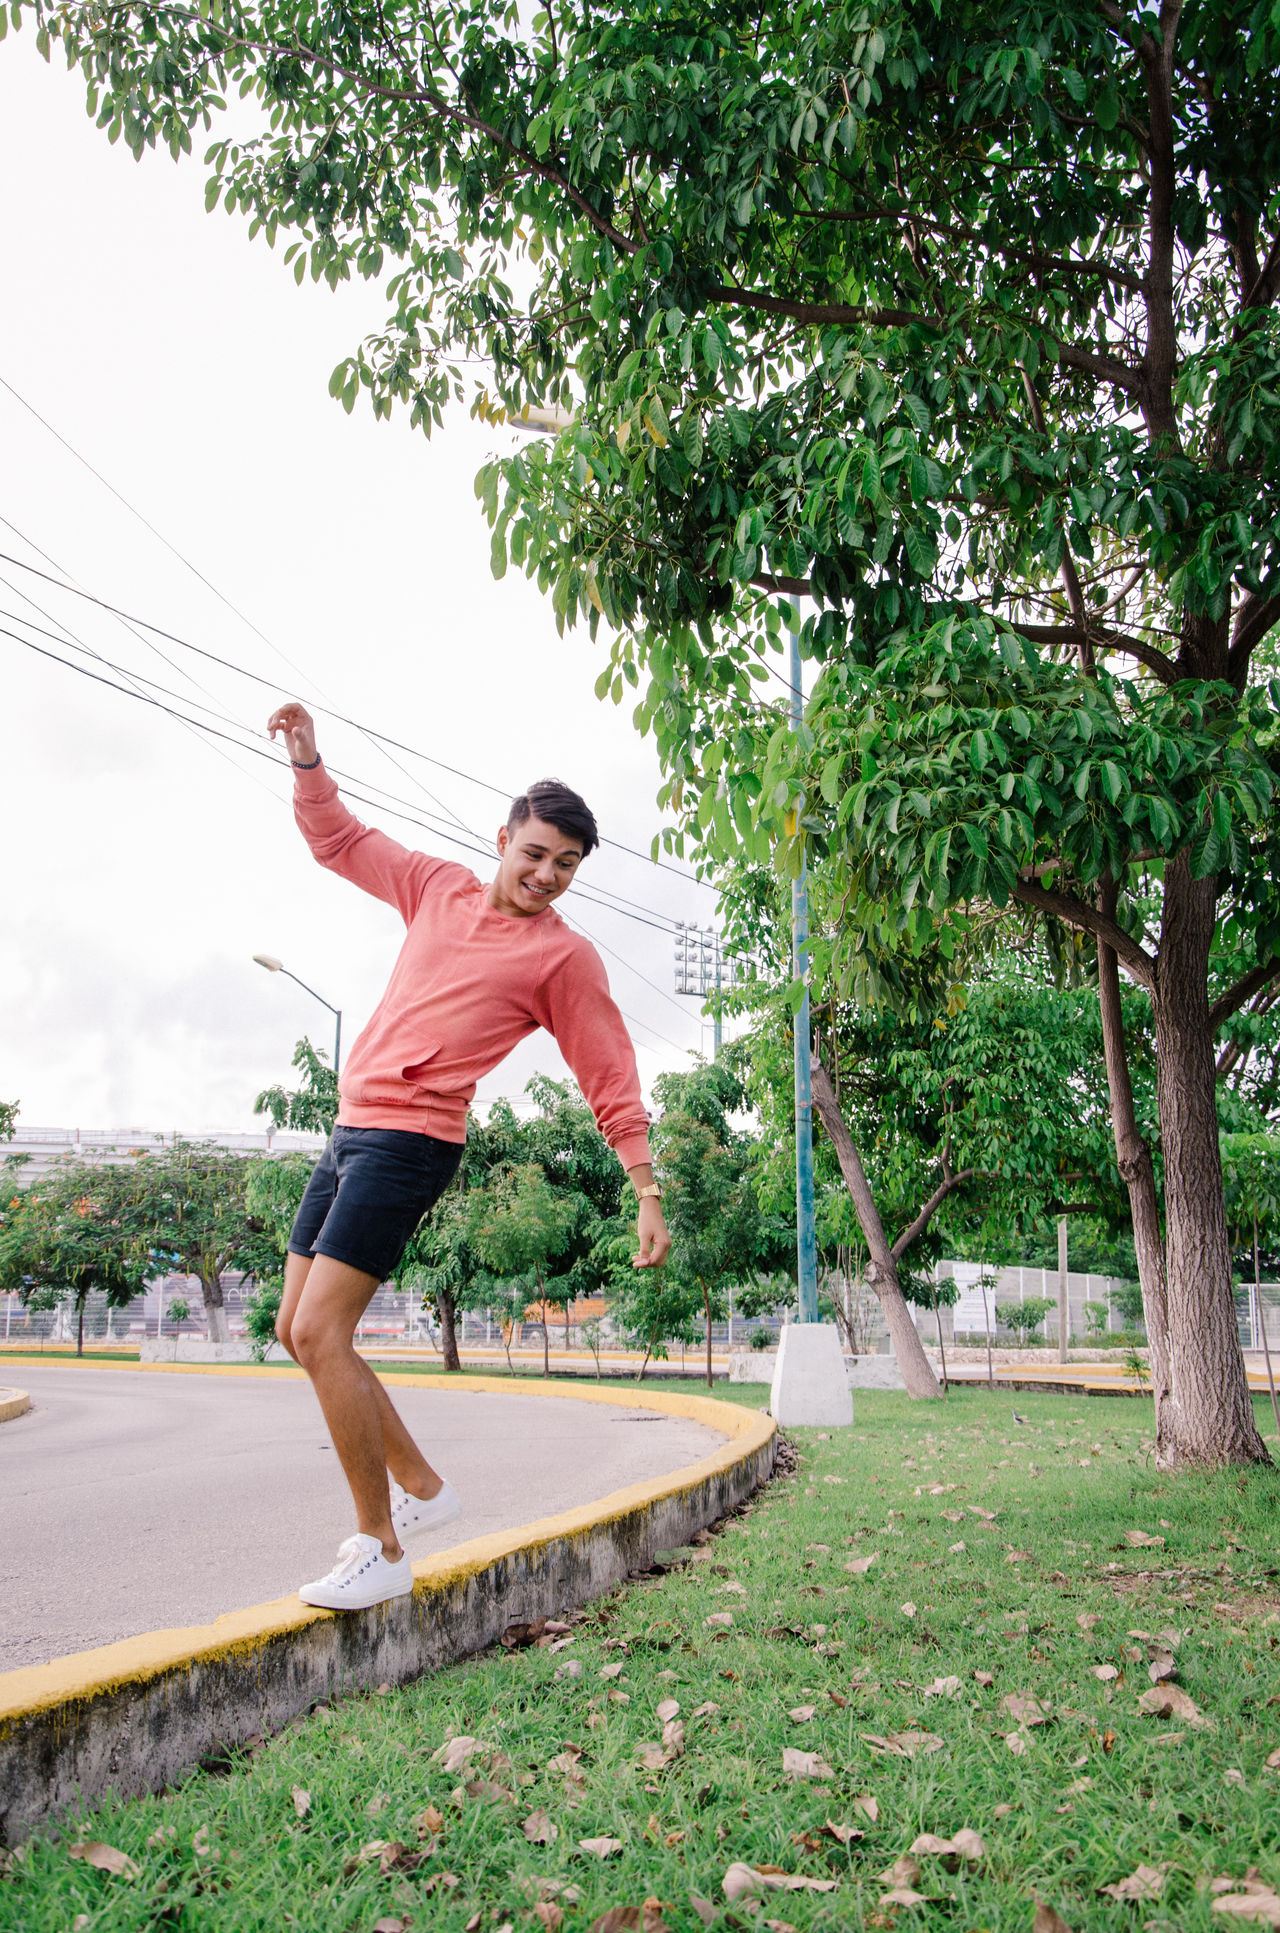 Beautiful stock photos of mexico, 20-24 Years, Arms Outstretched, Balancing, Cancun